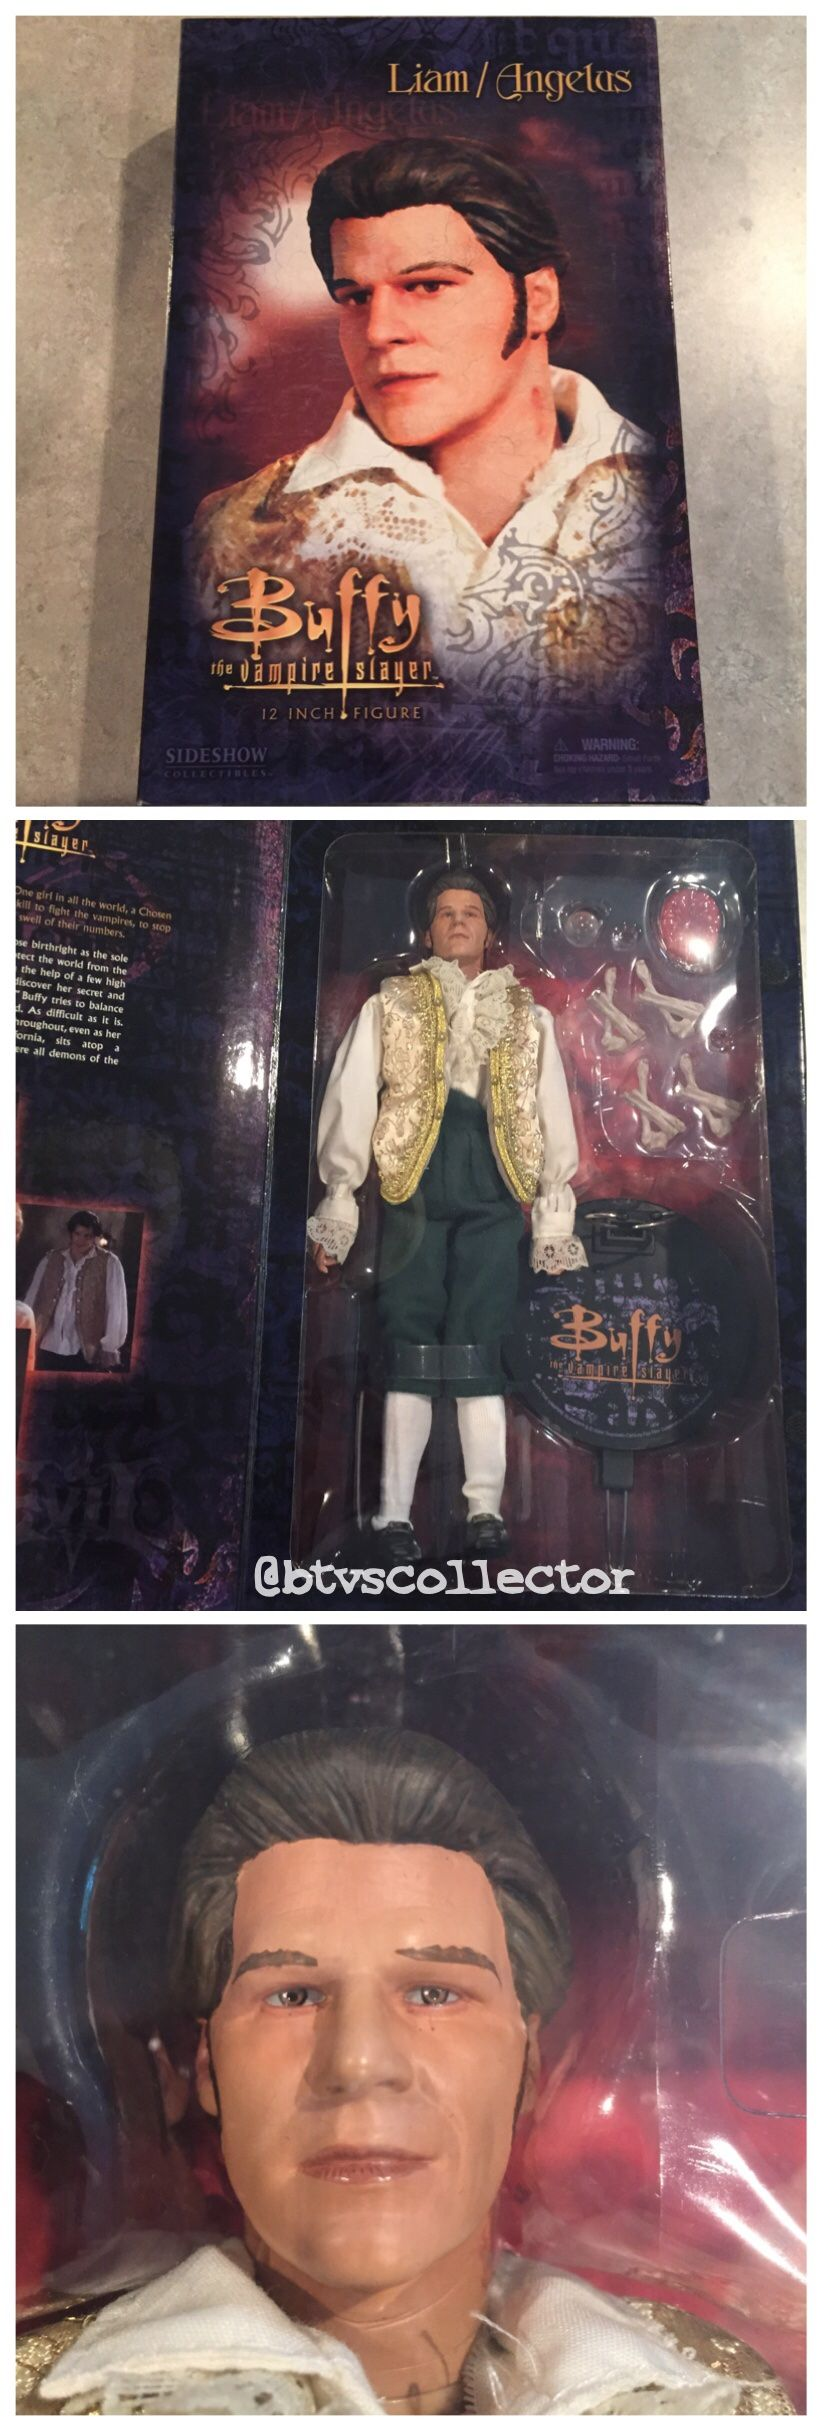 """Sideshow Collectibles (1:6 Scale) 12"""" Buffy the Vampire Slayer Figure - Liam/Angelus. #btvscollector #btvs #buffy #buffythevampireslayer"""